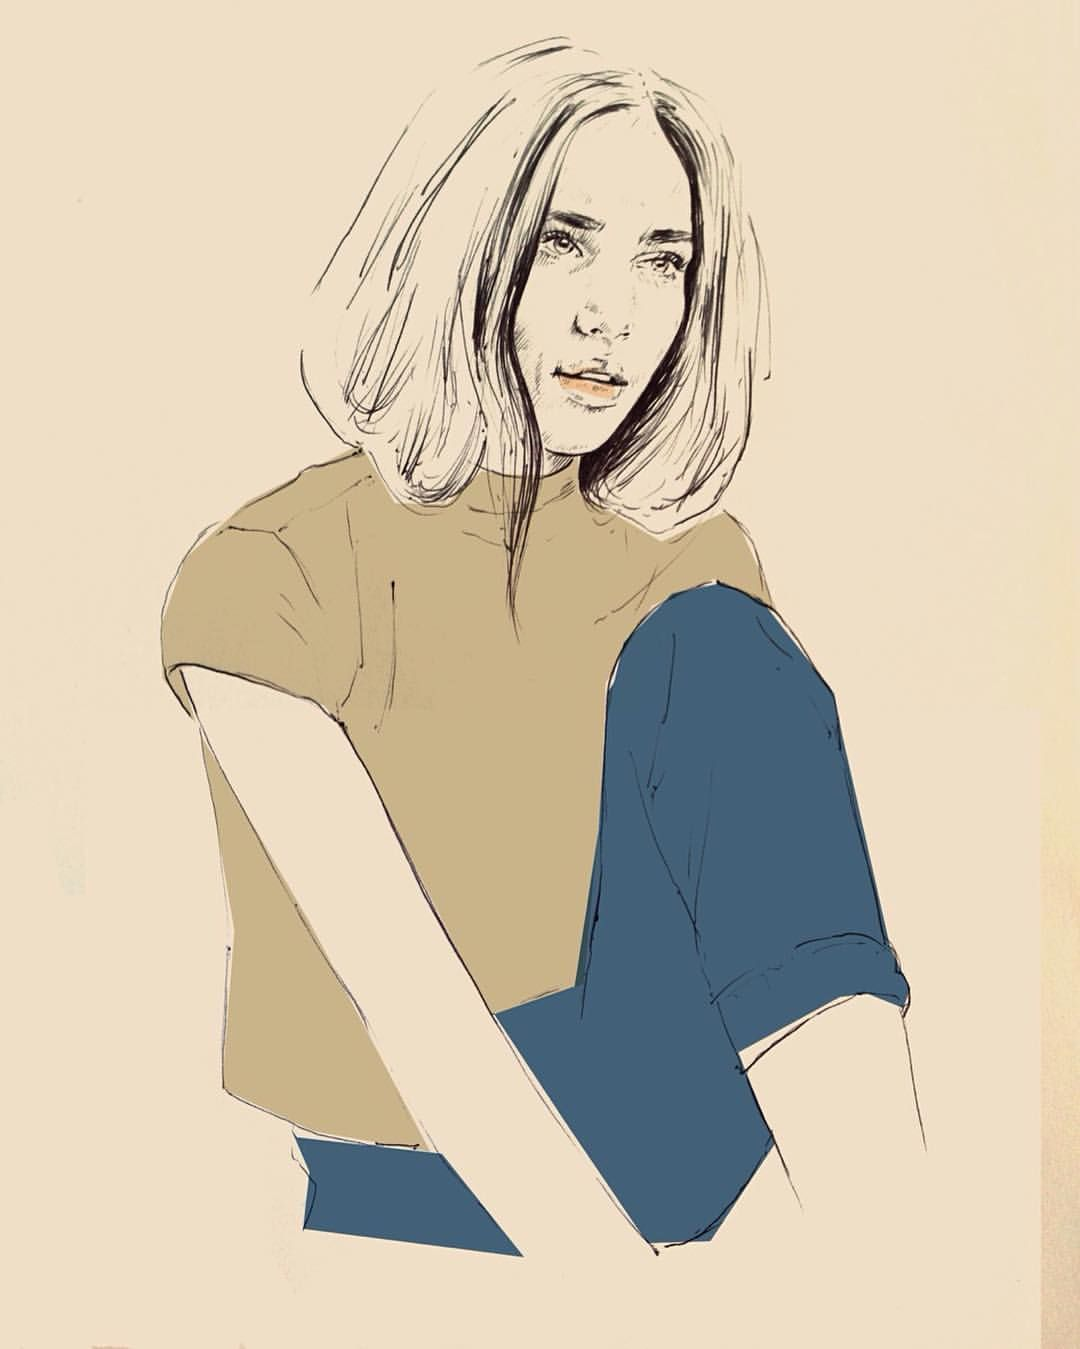 Trying some new stuff #art #colors #portrait #drawing #illustration #carolinemarine #carolinehebel (hier: Berlin, Germany)